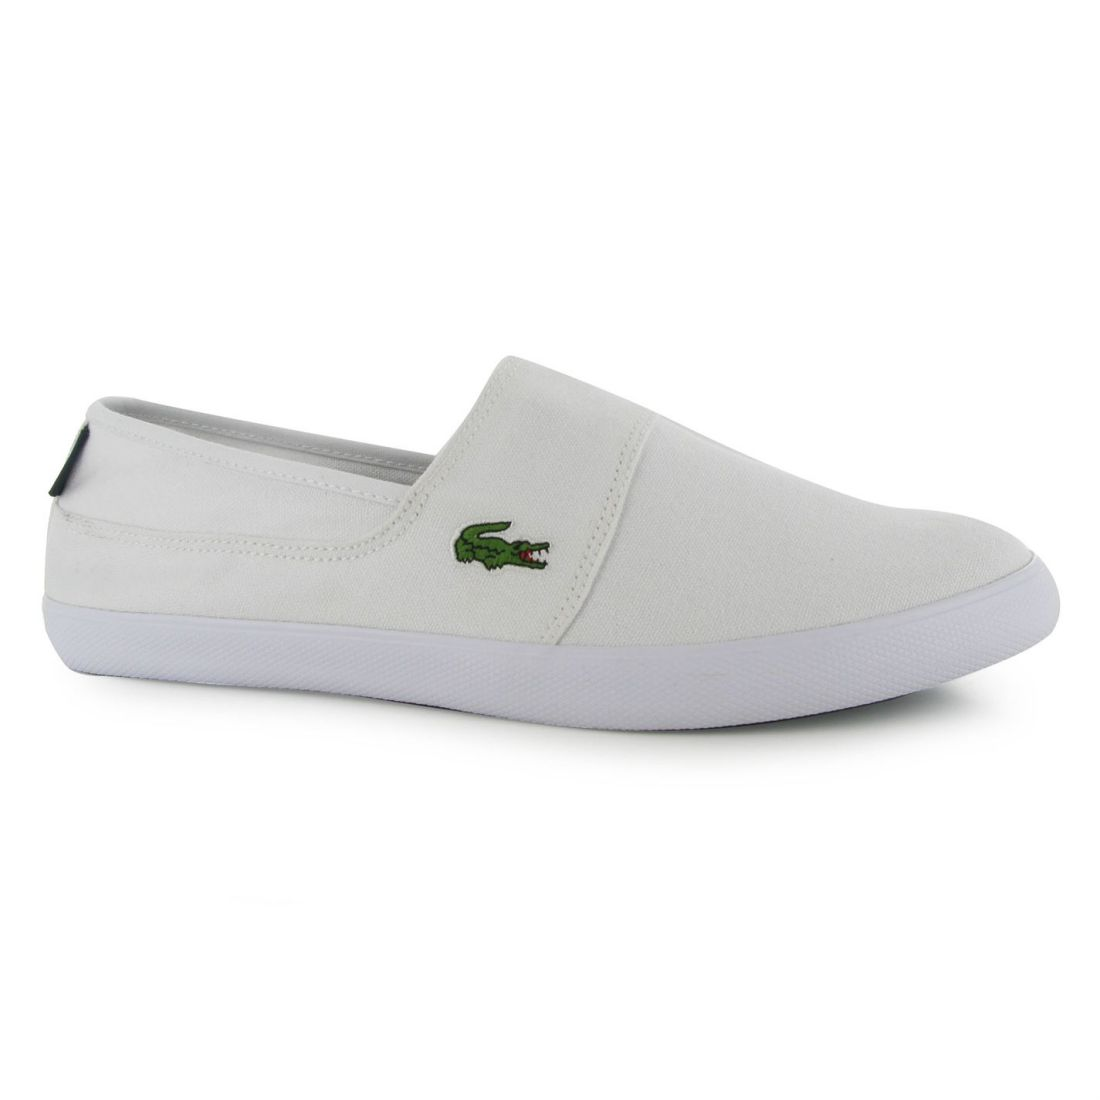 dfbf2d00c1097 Image is loading Lacoste-Marice-Casual-Shoes-Mens